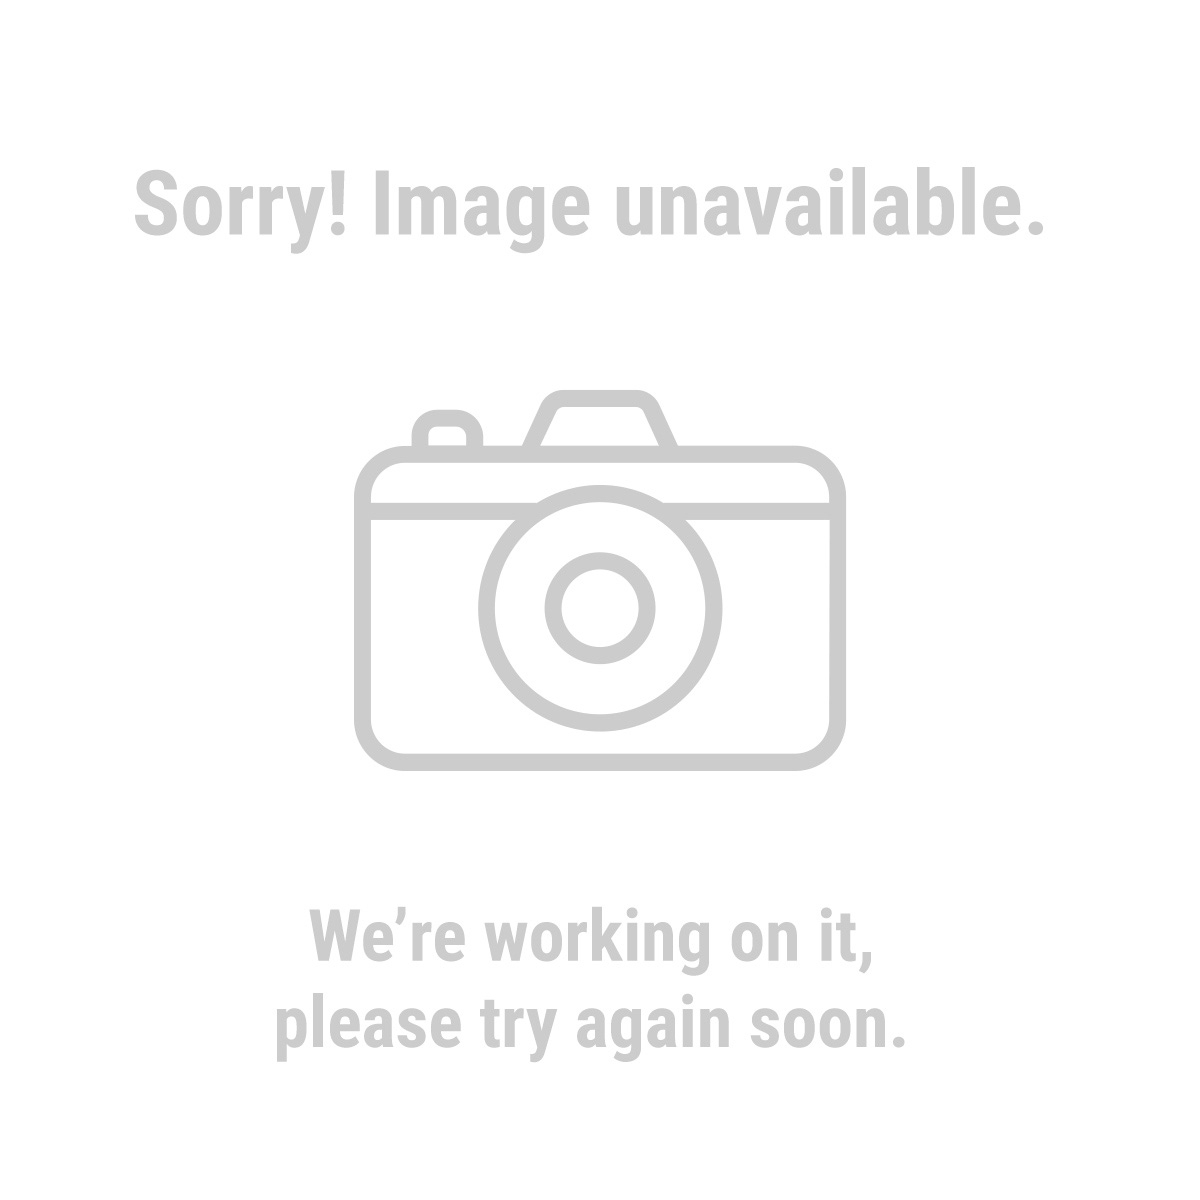 Storehouse 93927 8 Bin Portable Parts Storage Case